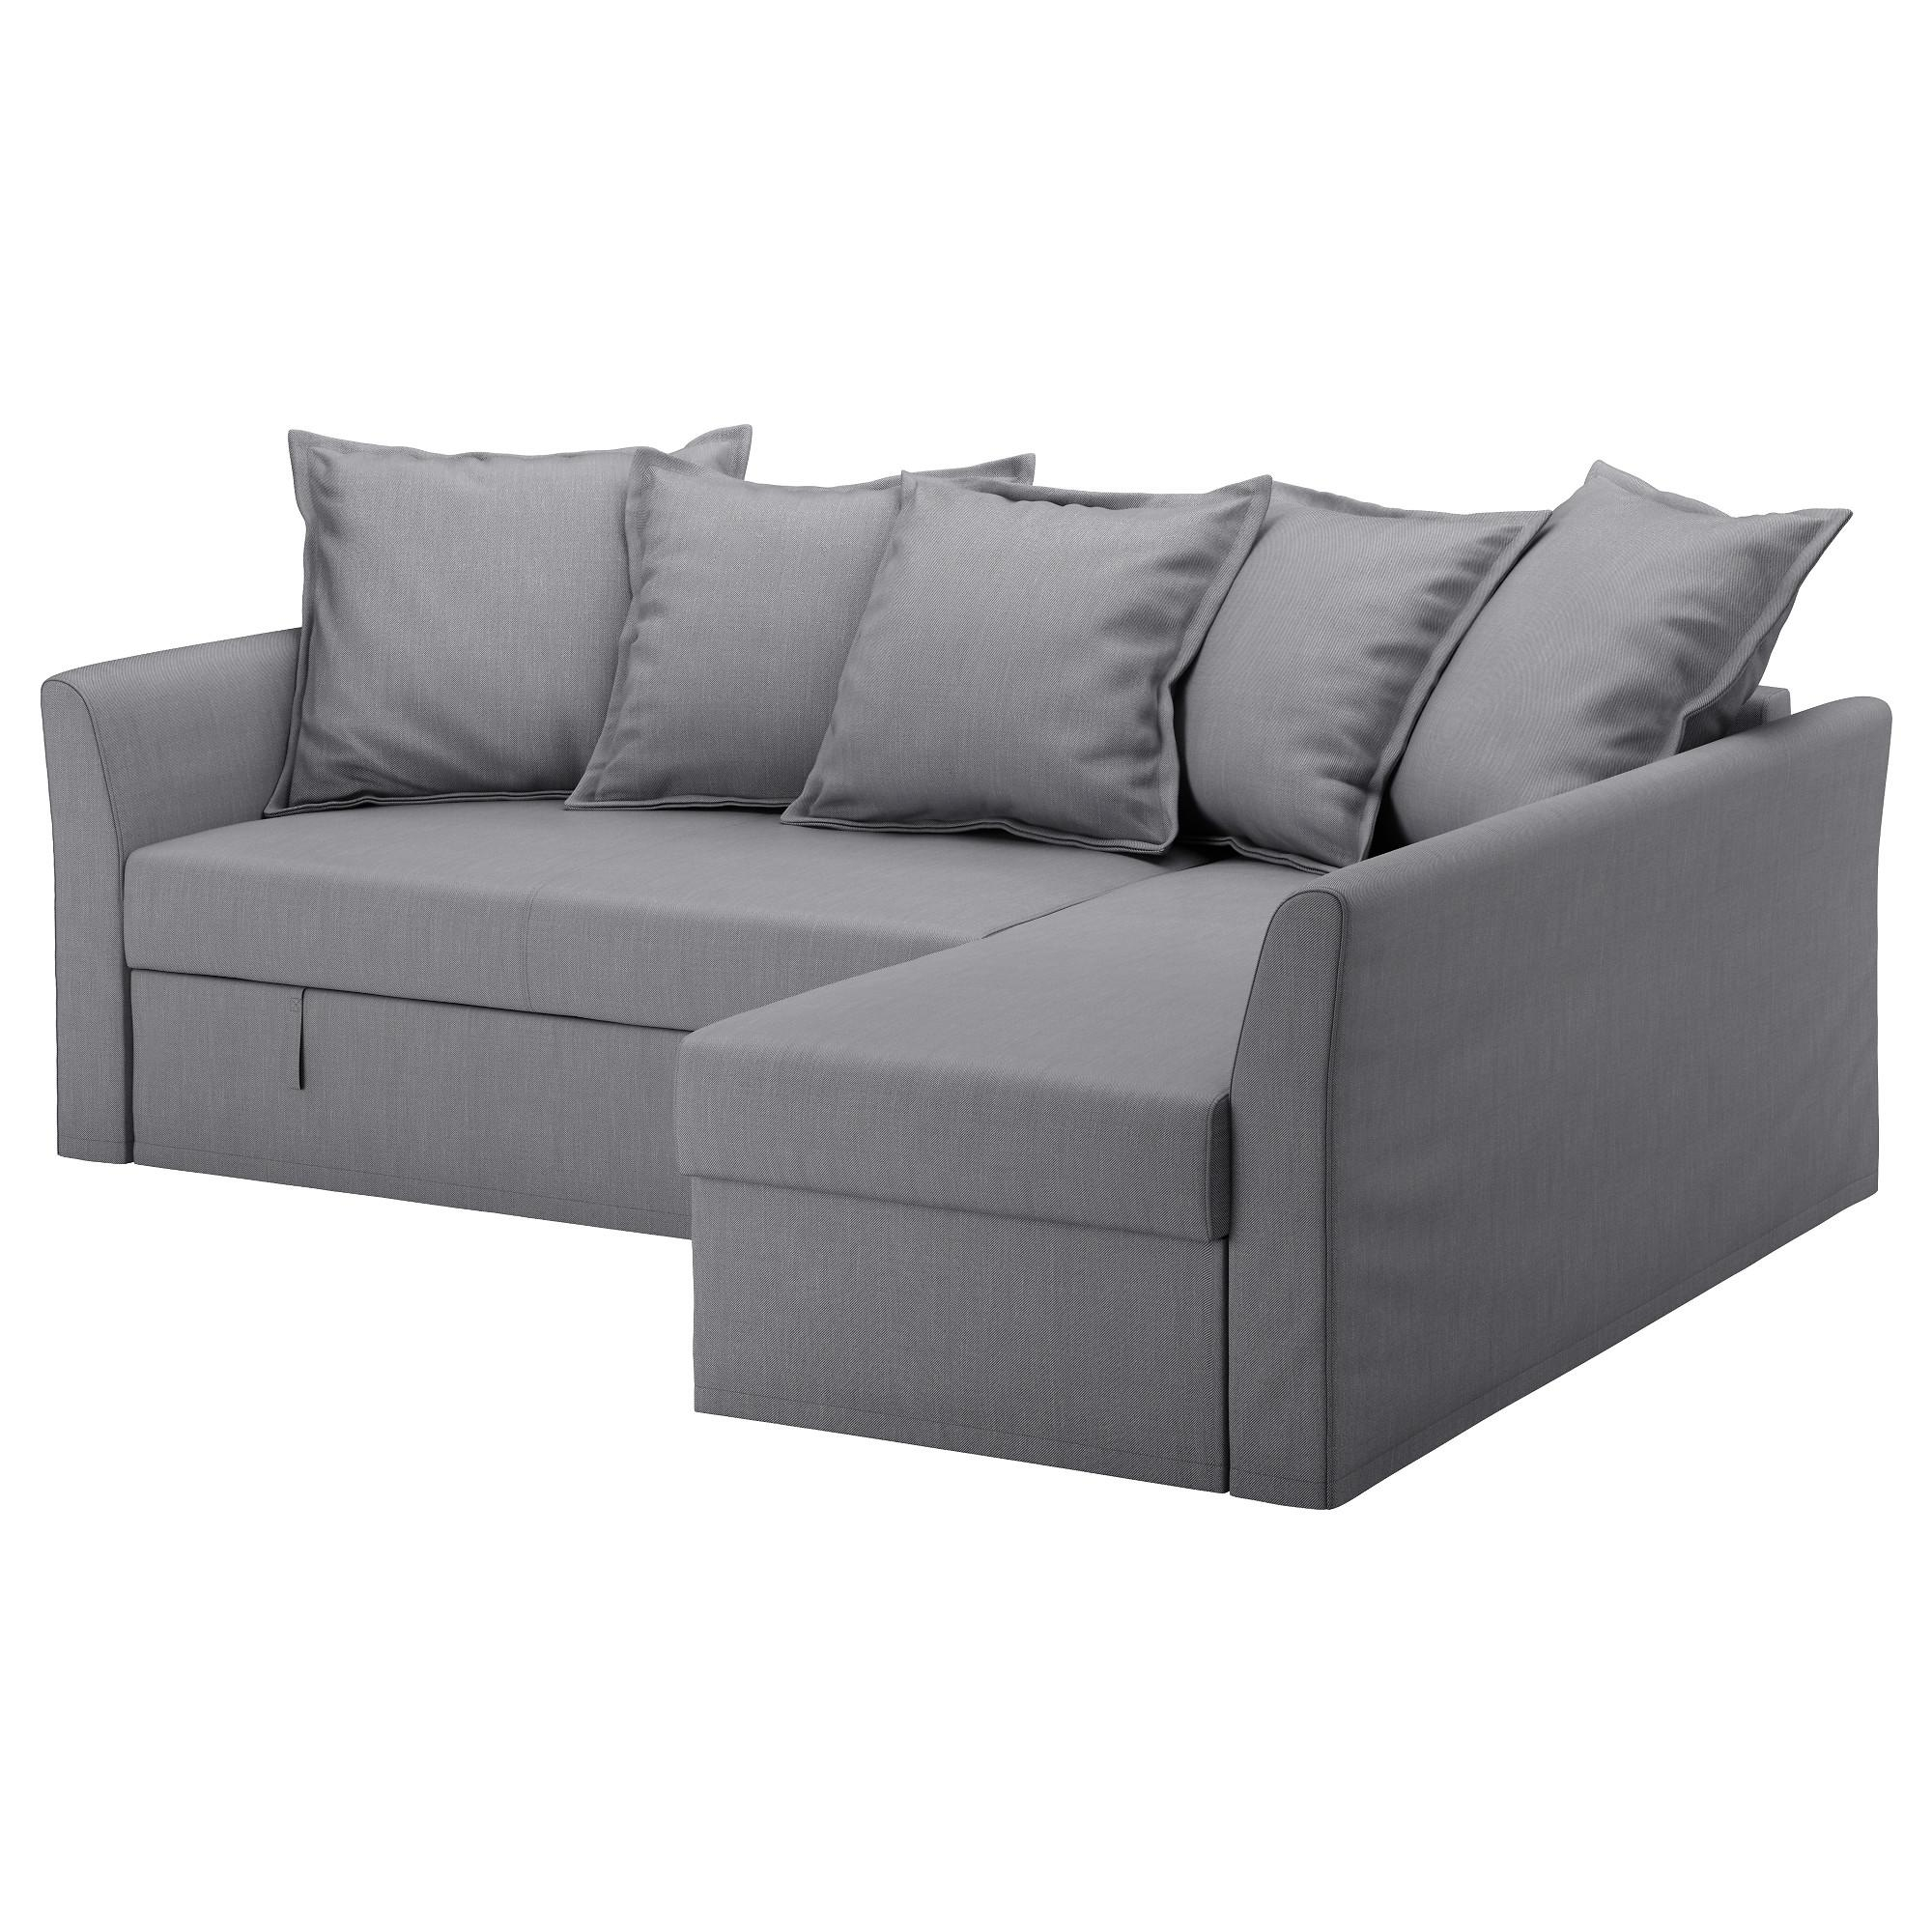 Top 15 Sectional Sleeper Sofas Ikea For Small Houses – Video And In Ikea Loveseat Sleeper Sofas (View 10 of 20)